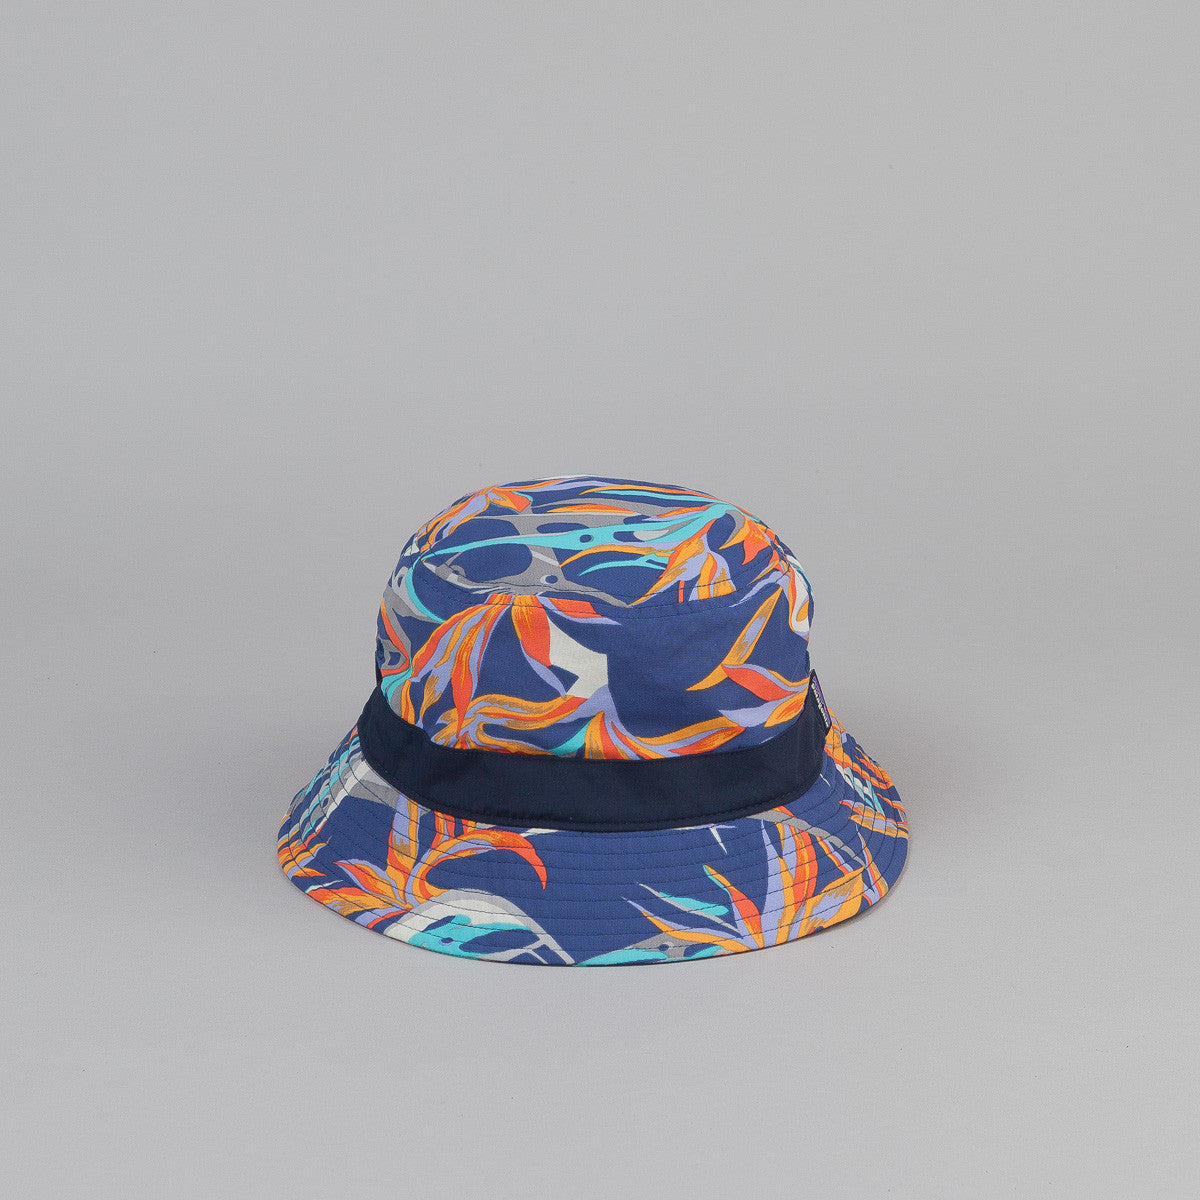 Patagonia Wavefarer Bucket Hat - Piton Paradise: Channel Blue